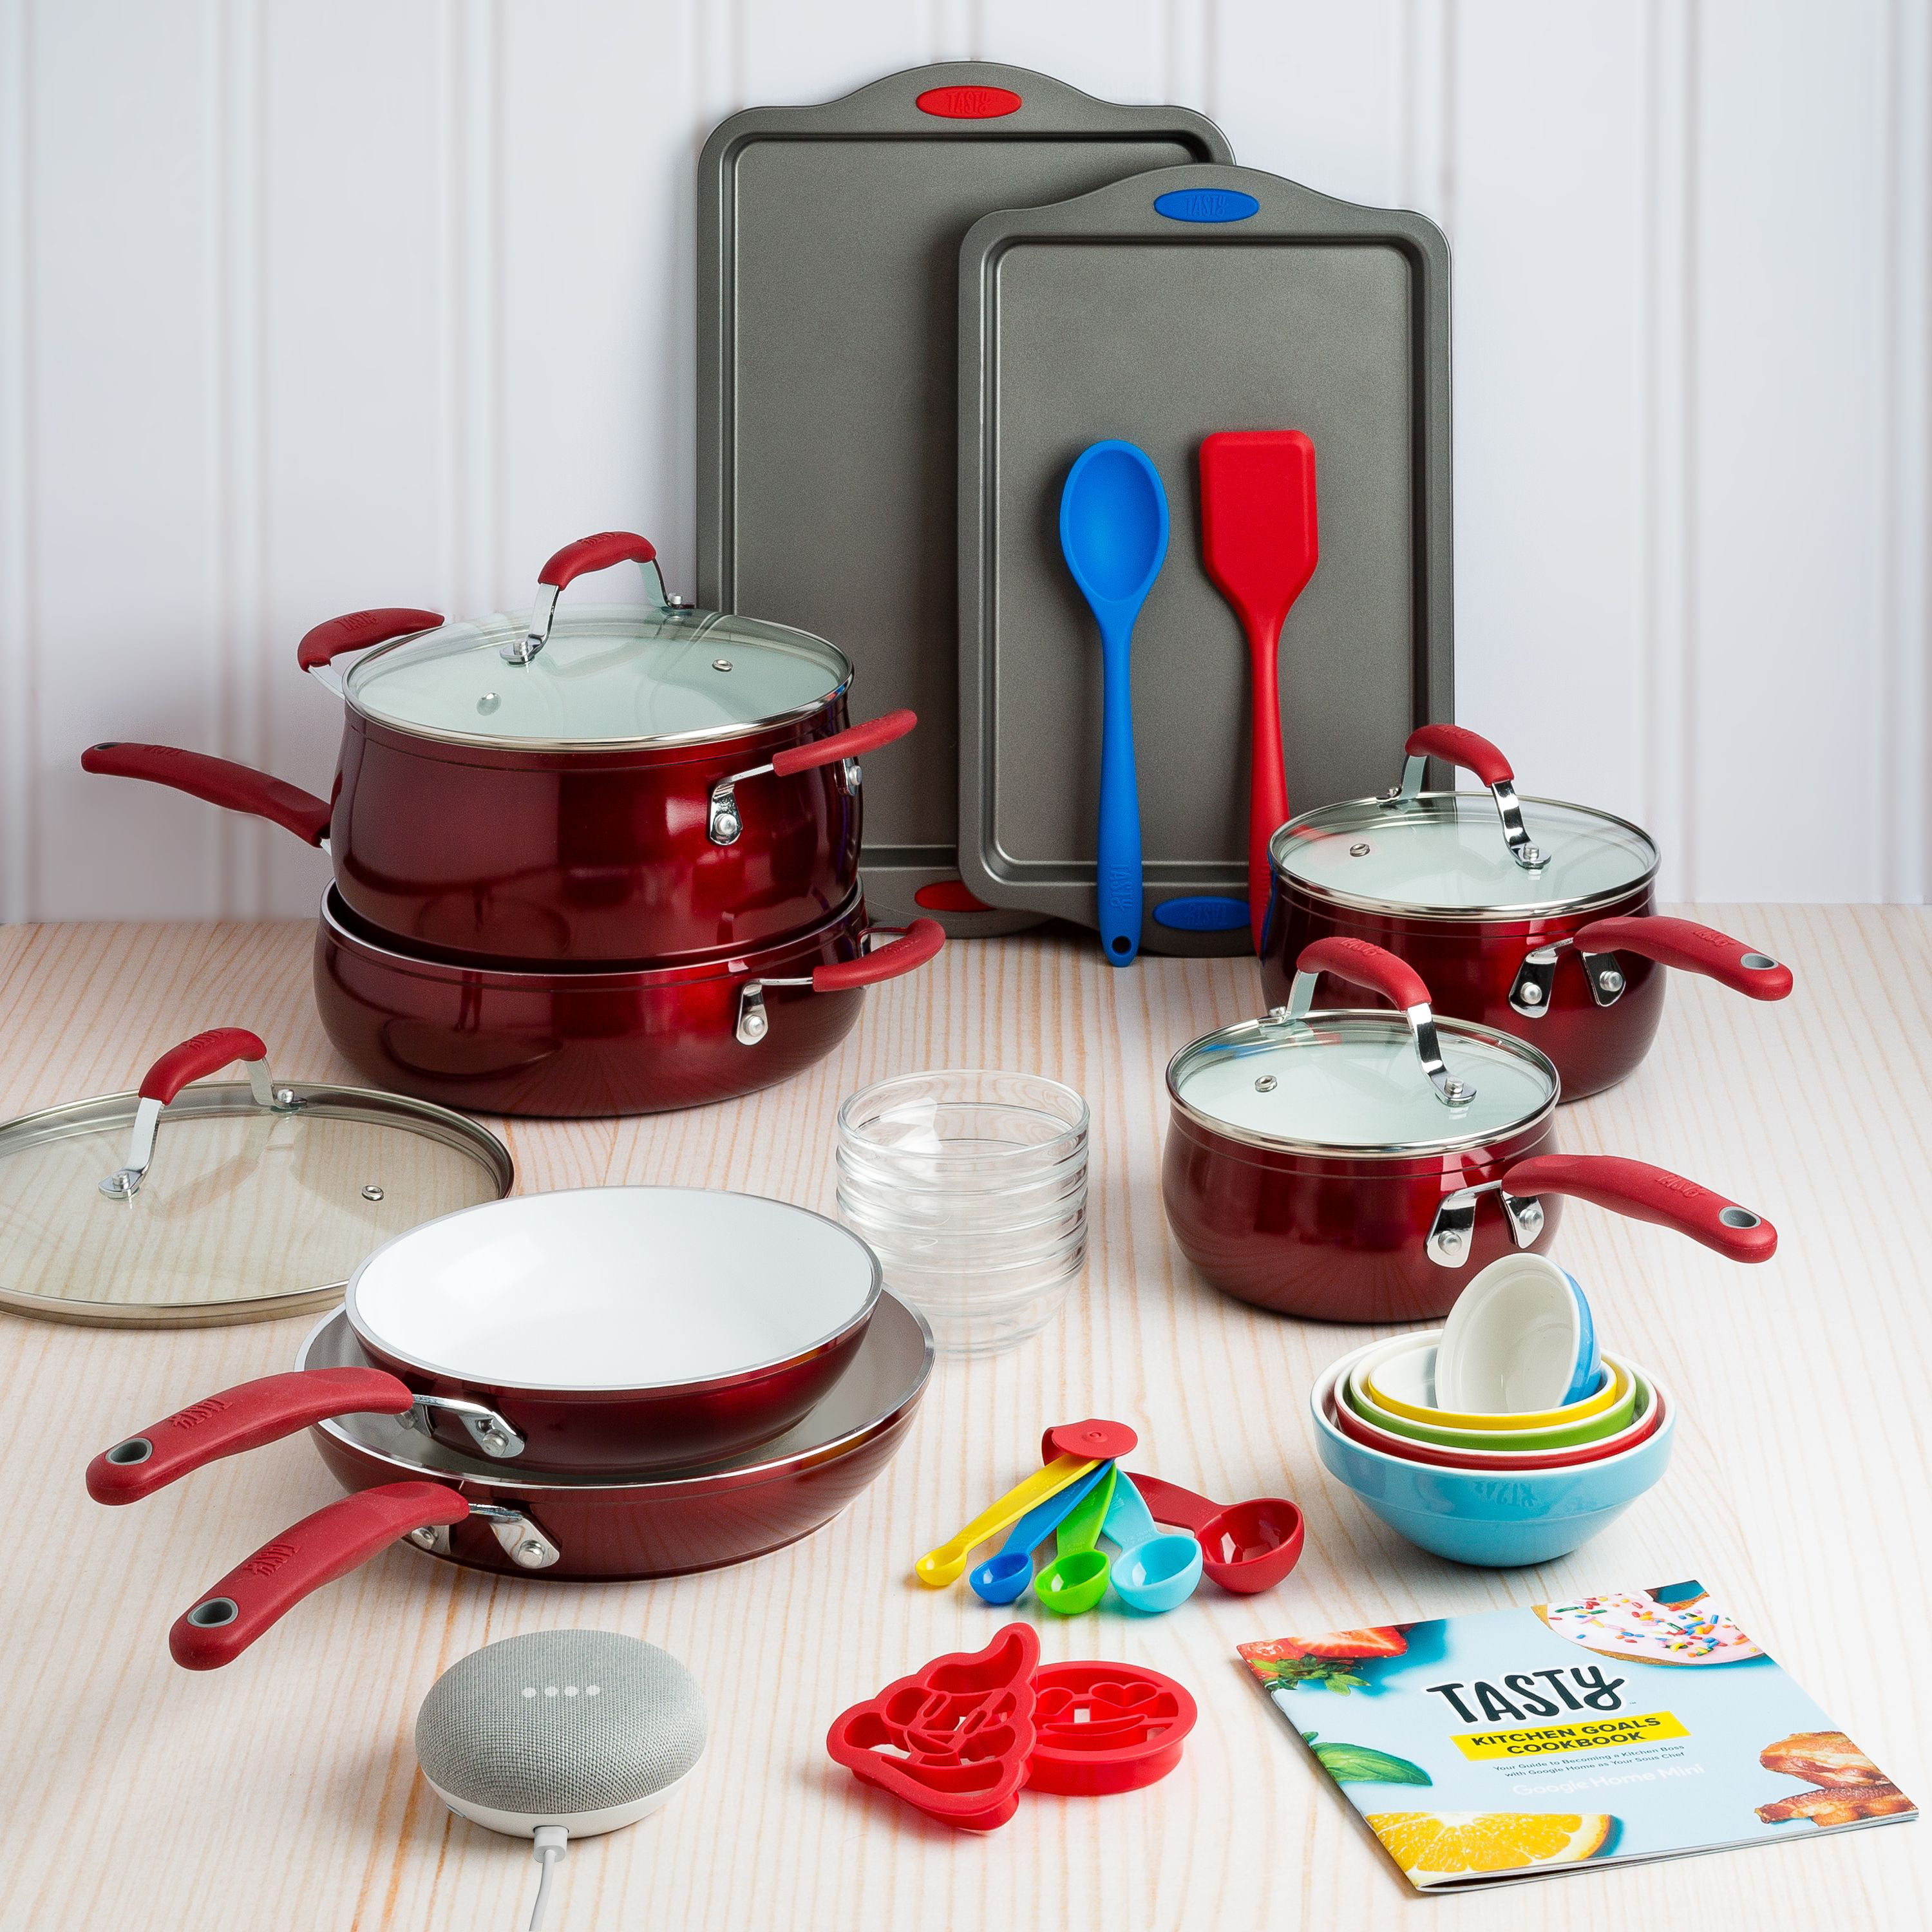 Tasty Ceramic Heavyweight Non-Stick Red Cookware Set, 30 Piece